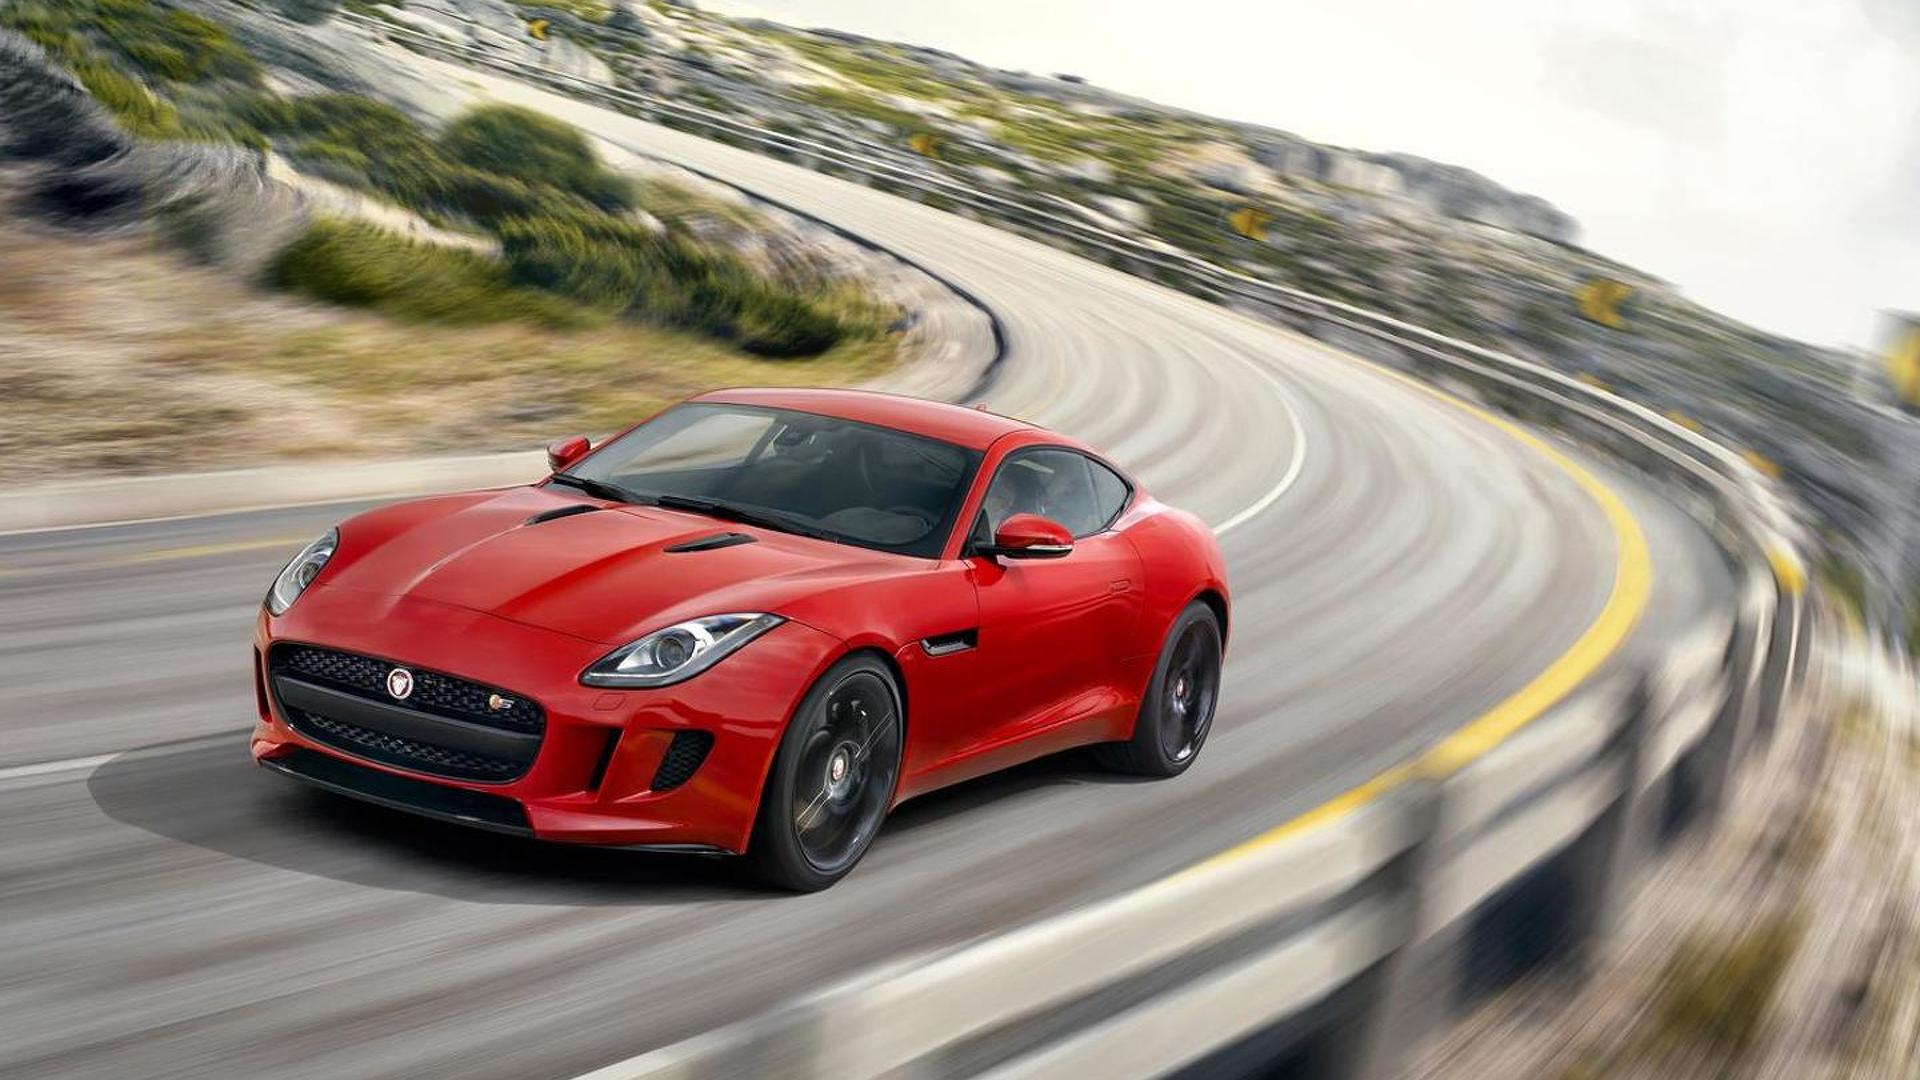 Awd Sports Cars >> Jaguar Says Awd Sports Cars Are Not A Priority